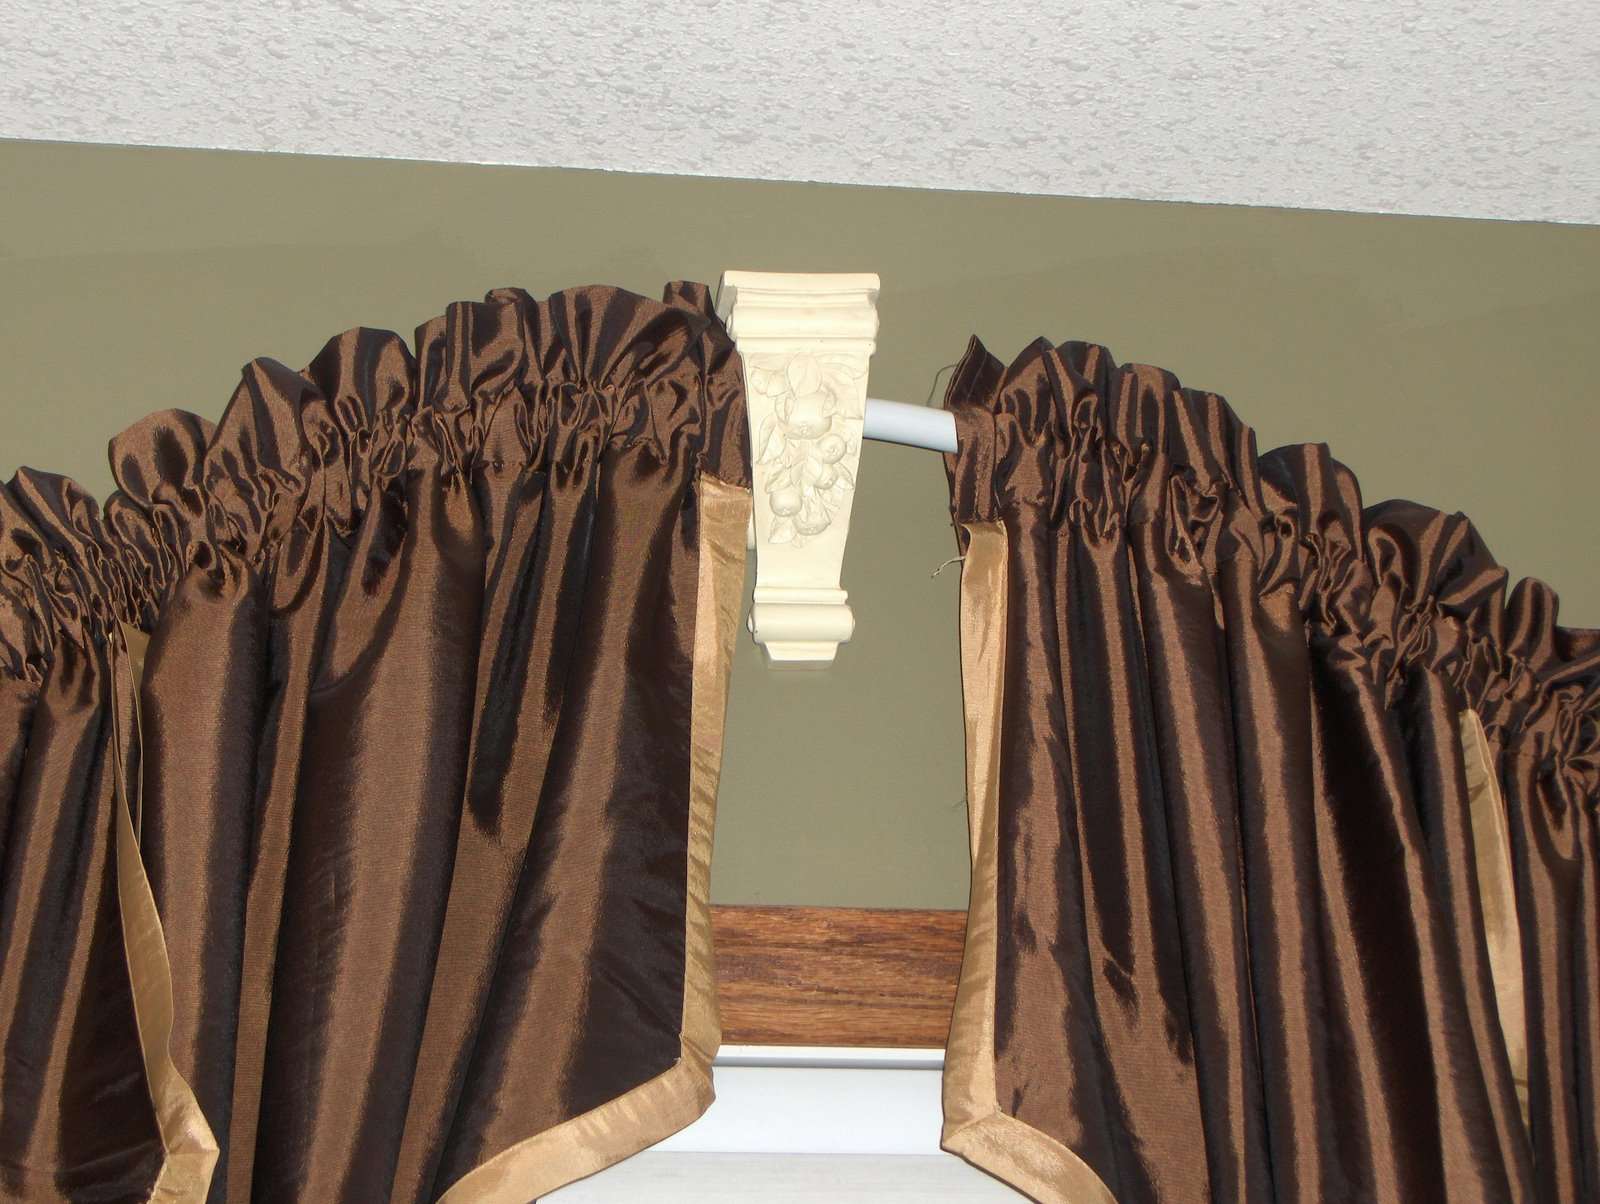 Curved curtain rod - New And Improved Curved Curtain Rods